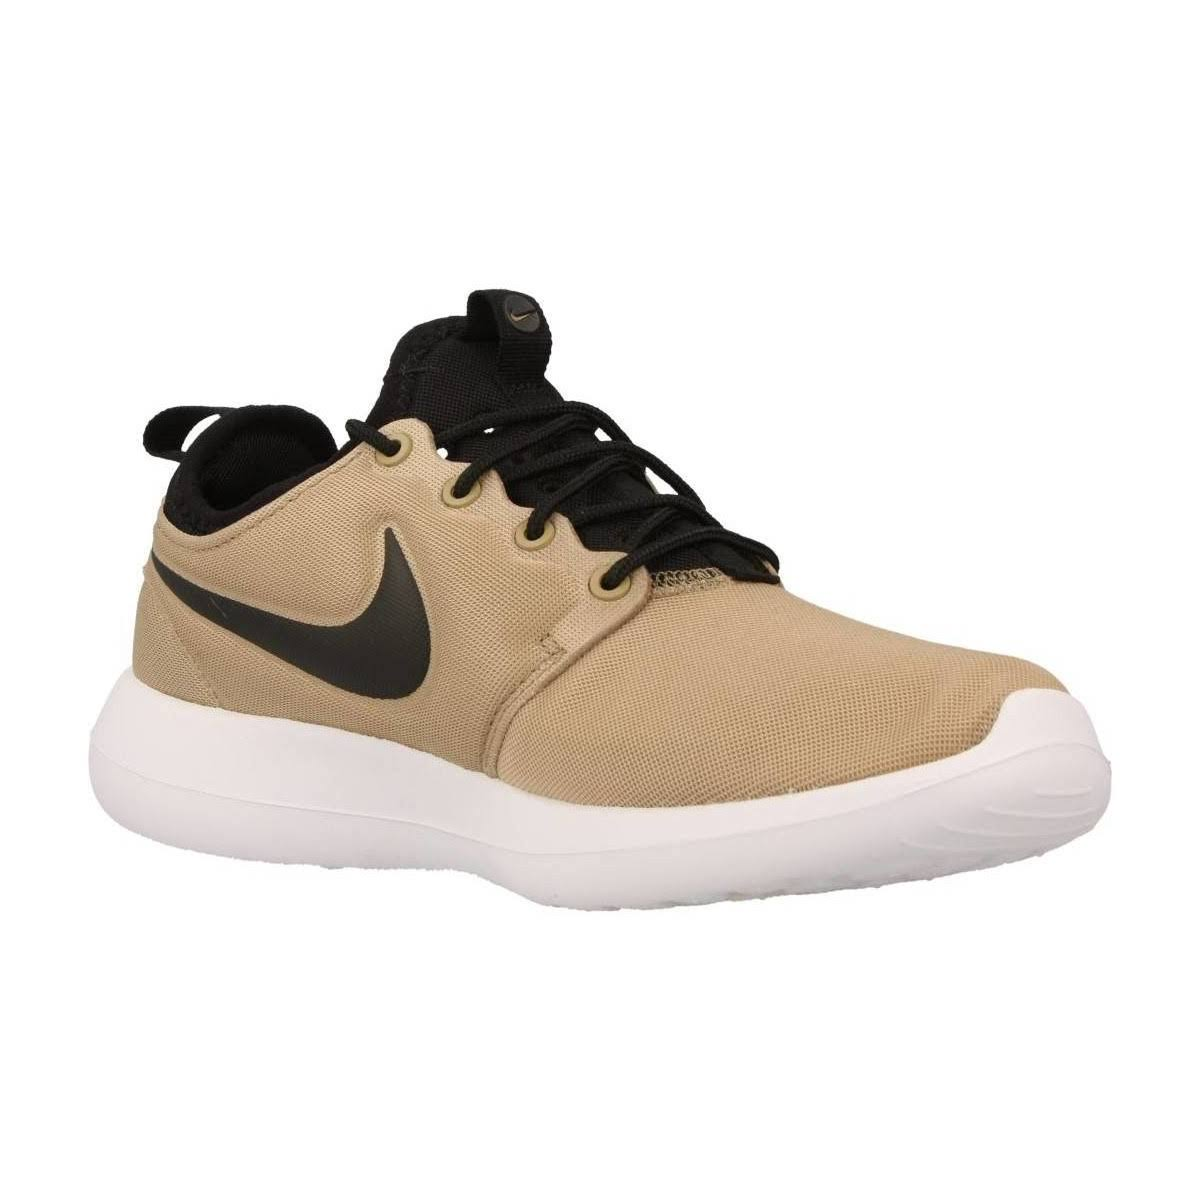 W Nike Roshe Two, Khaki/Black-Black-White